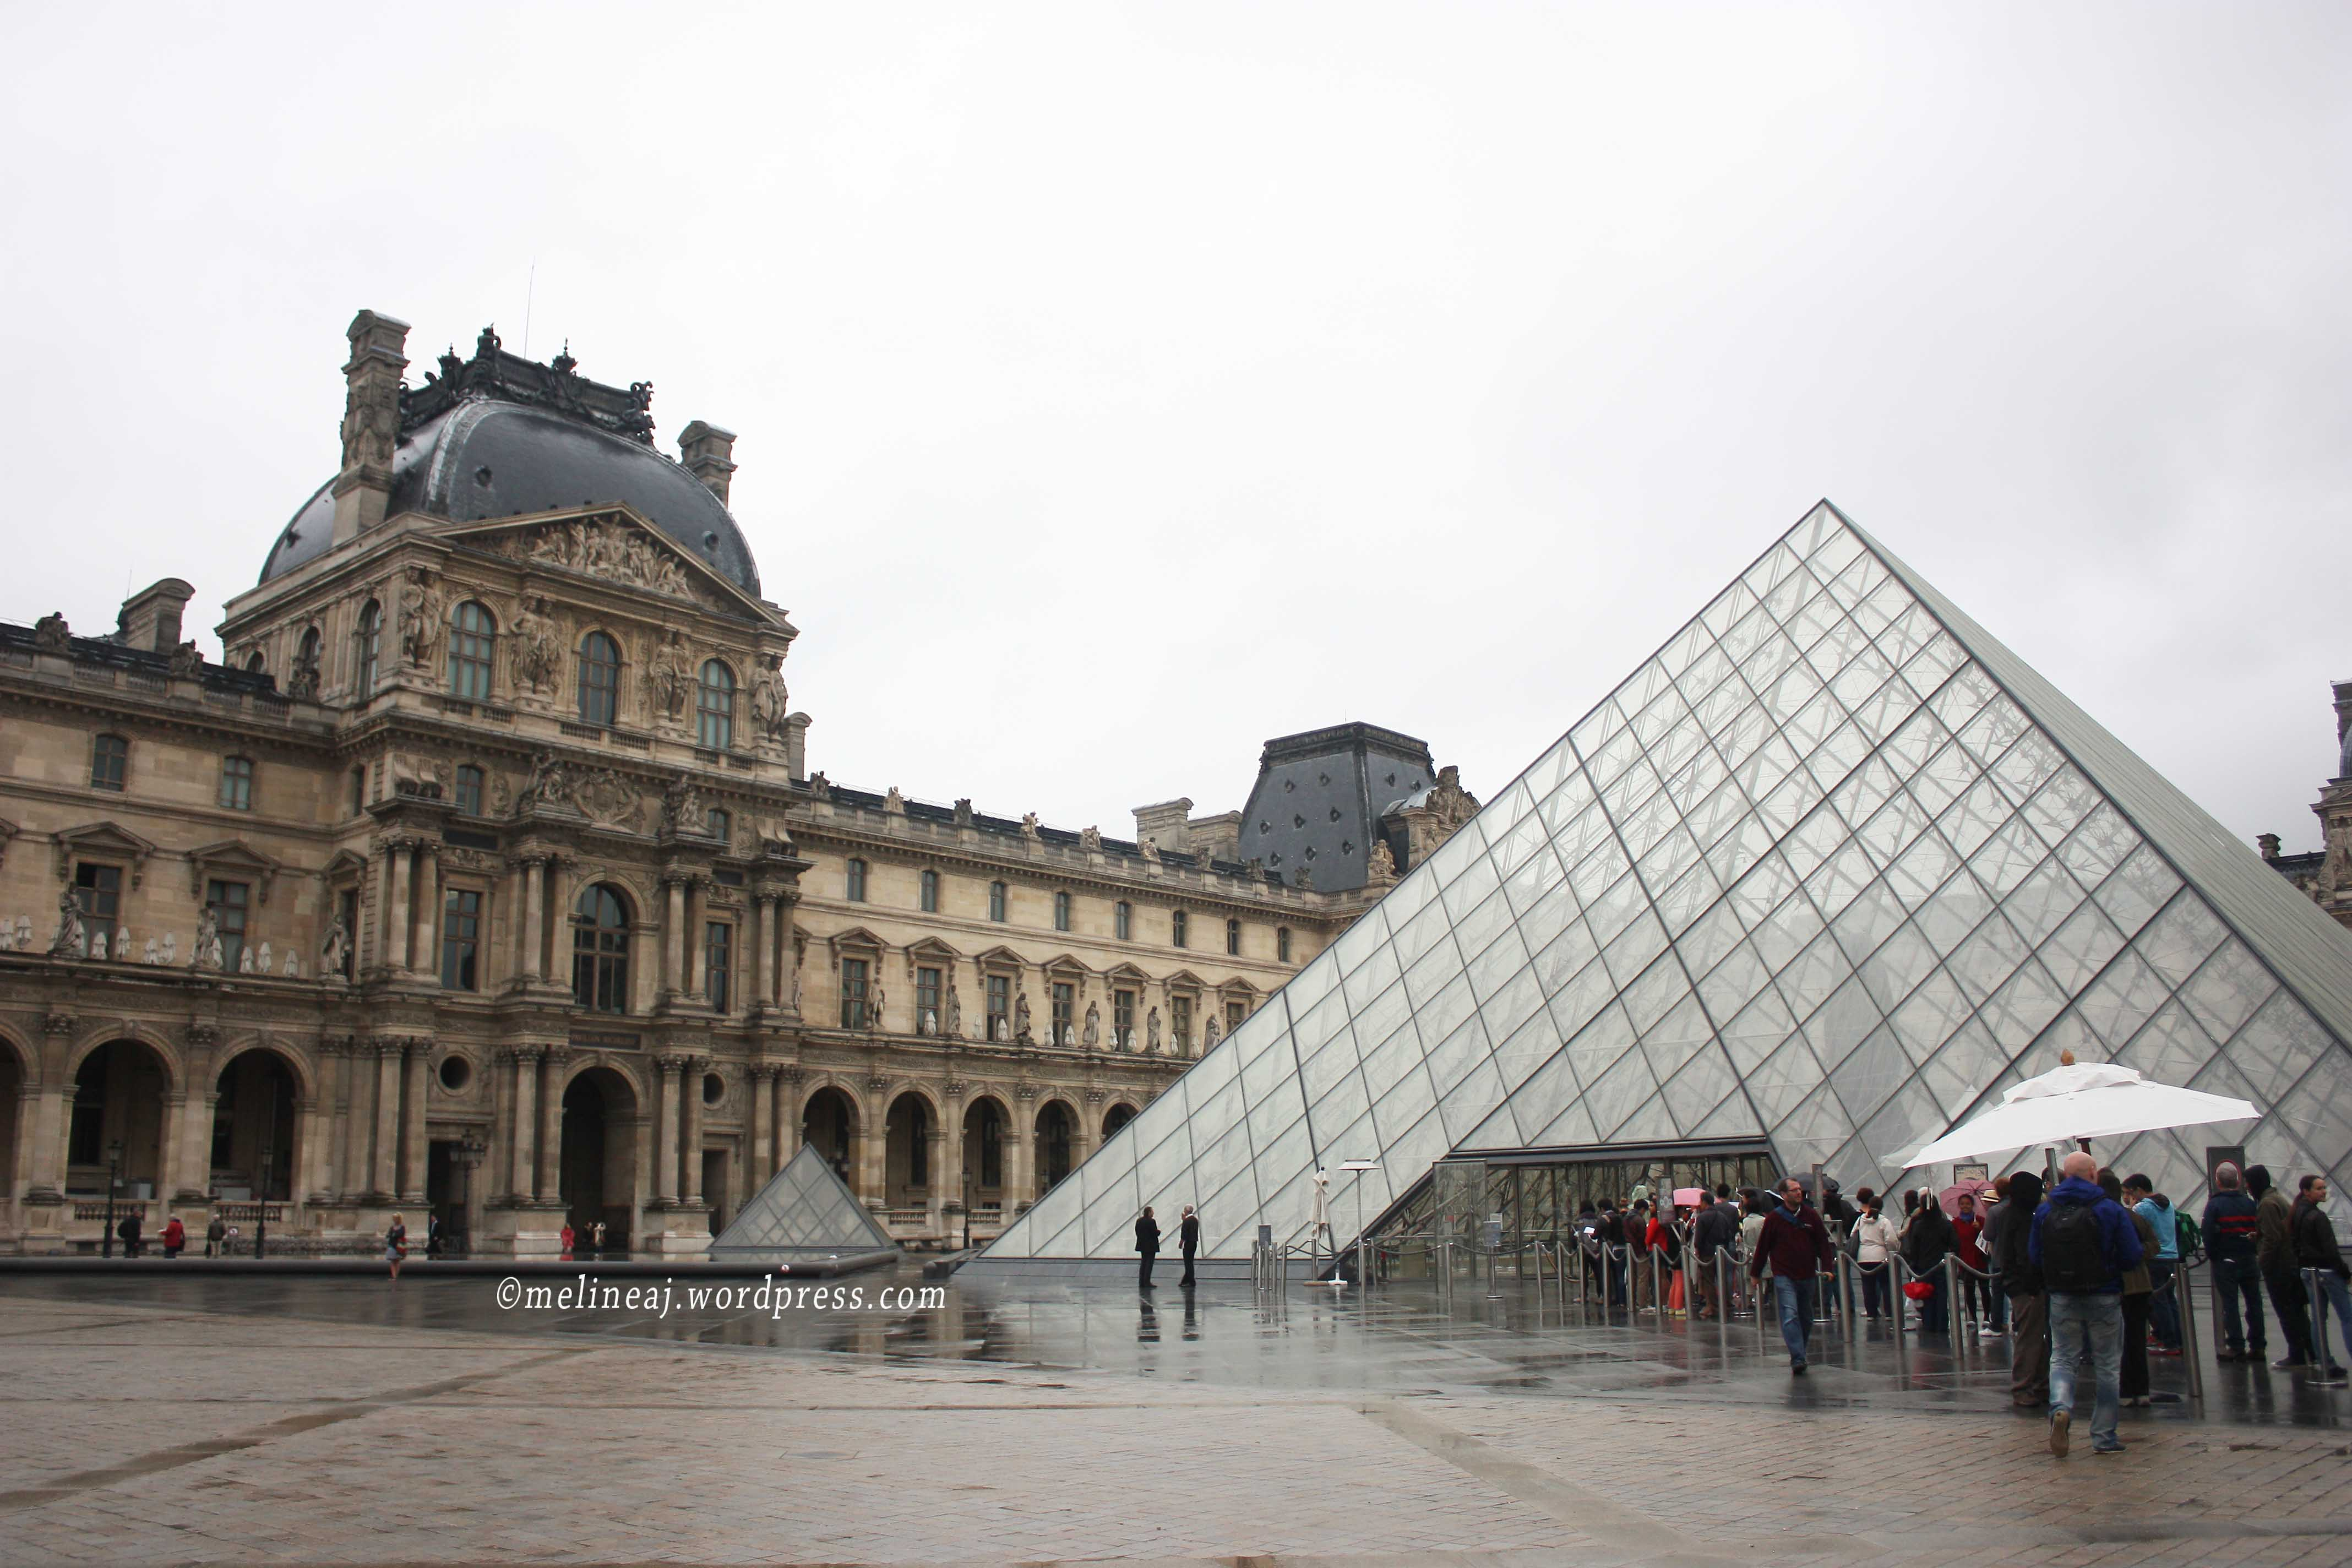 The Paris Museum Pass can be very useful. There are more then just museums on it too!! The Towers of Notre Dame, St Chapelle, Arc D'Triomphe, the Pantheon.. its a very useful pass.